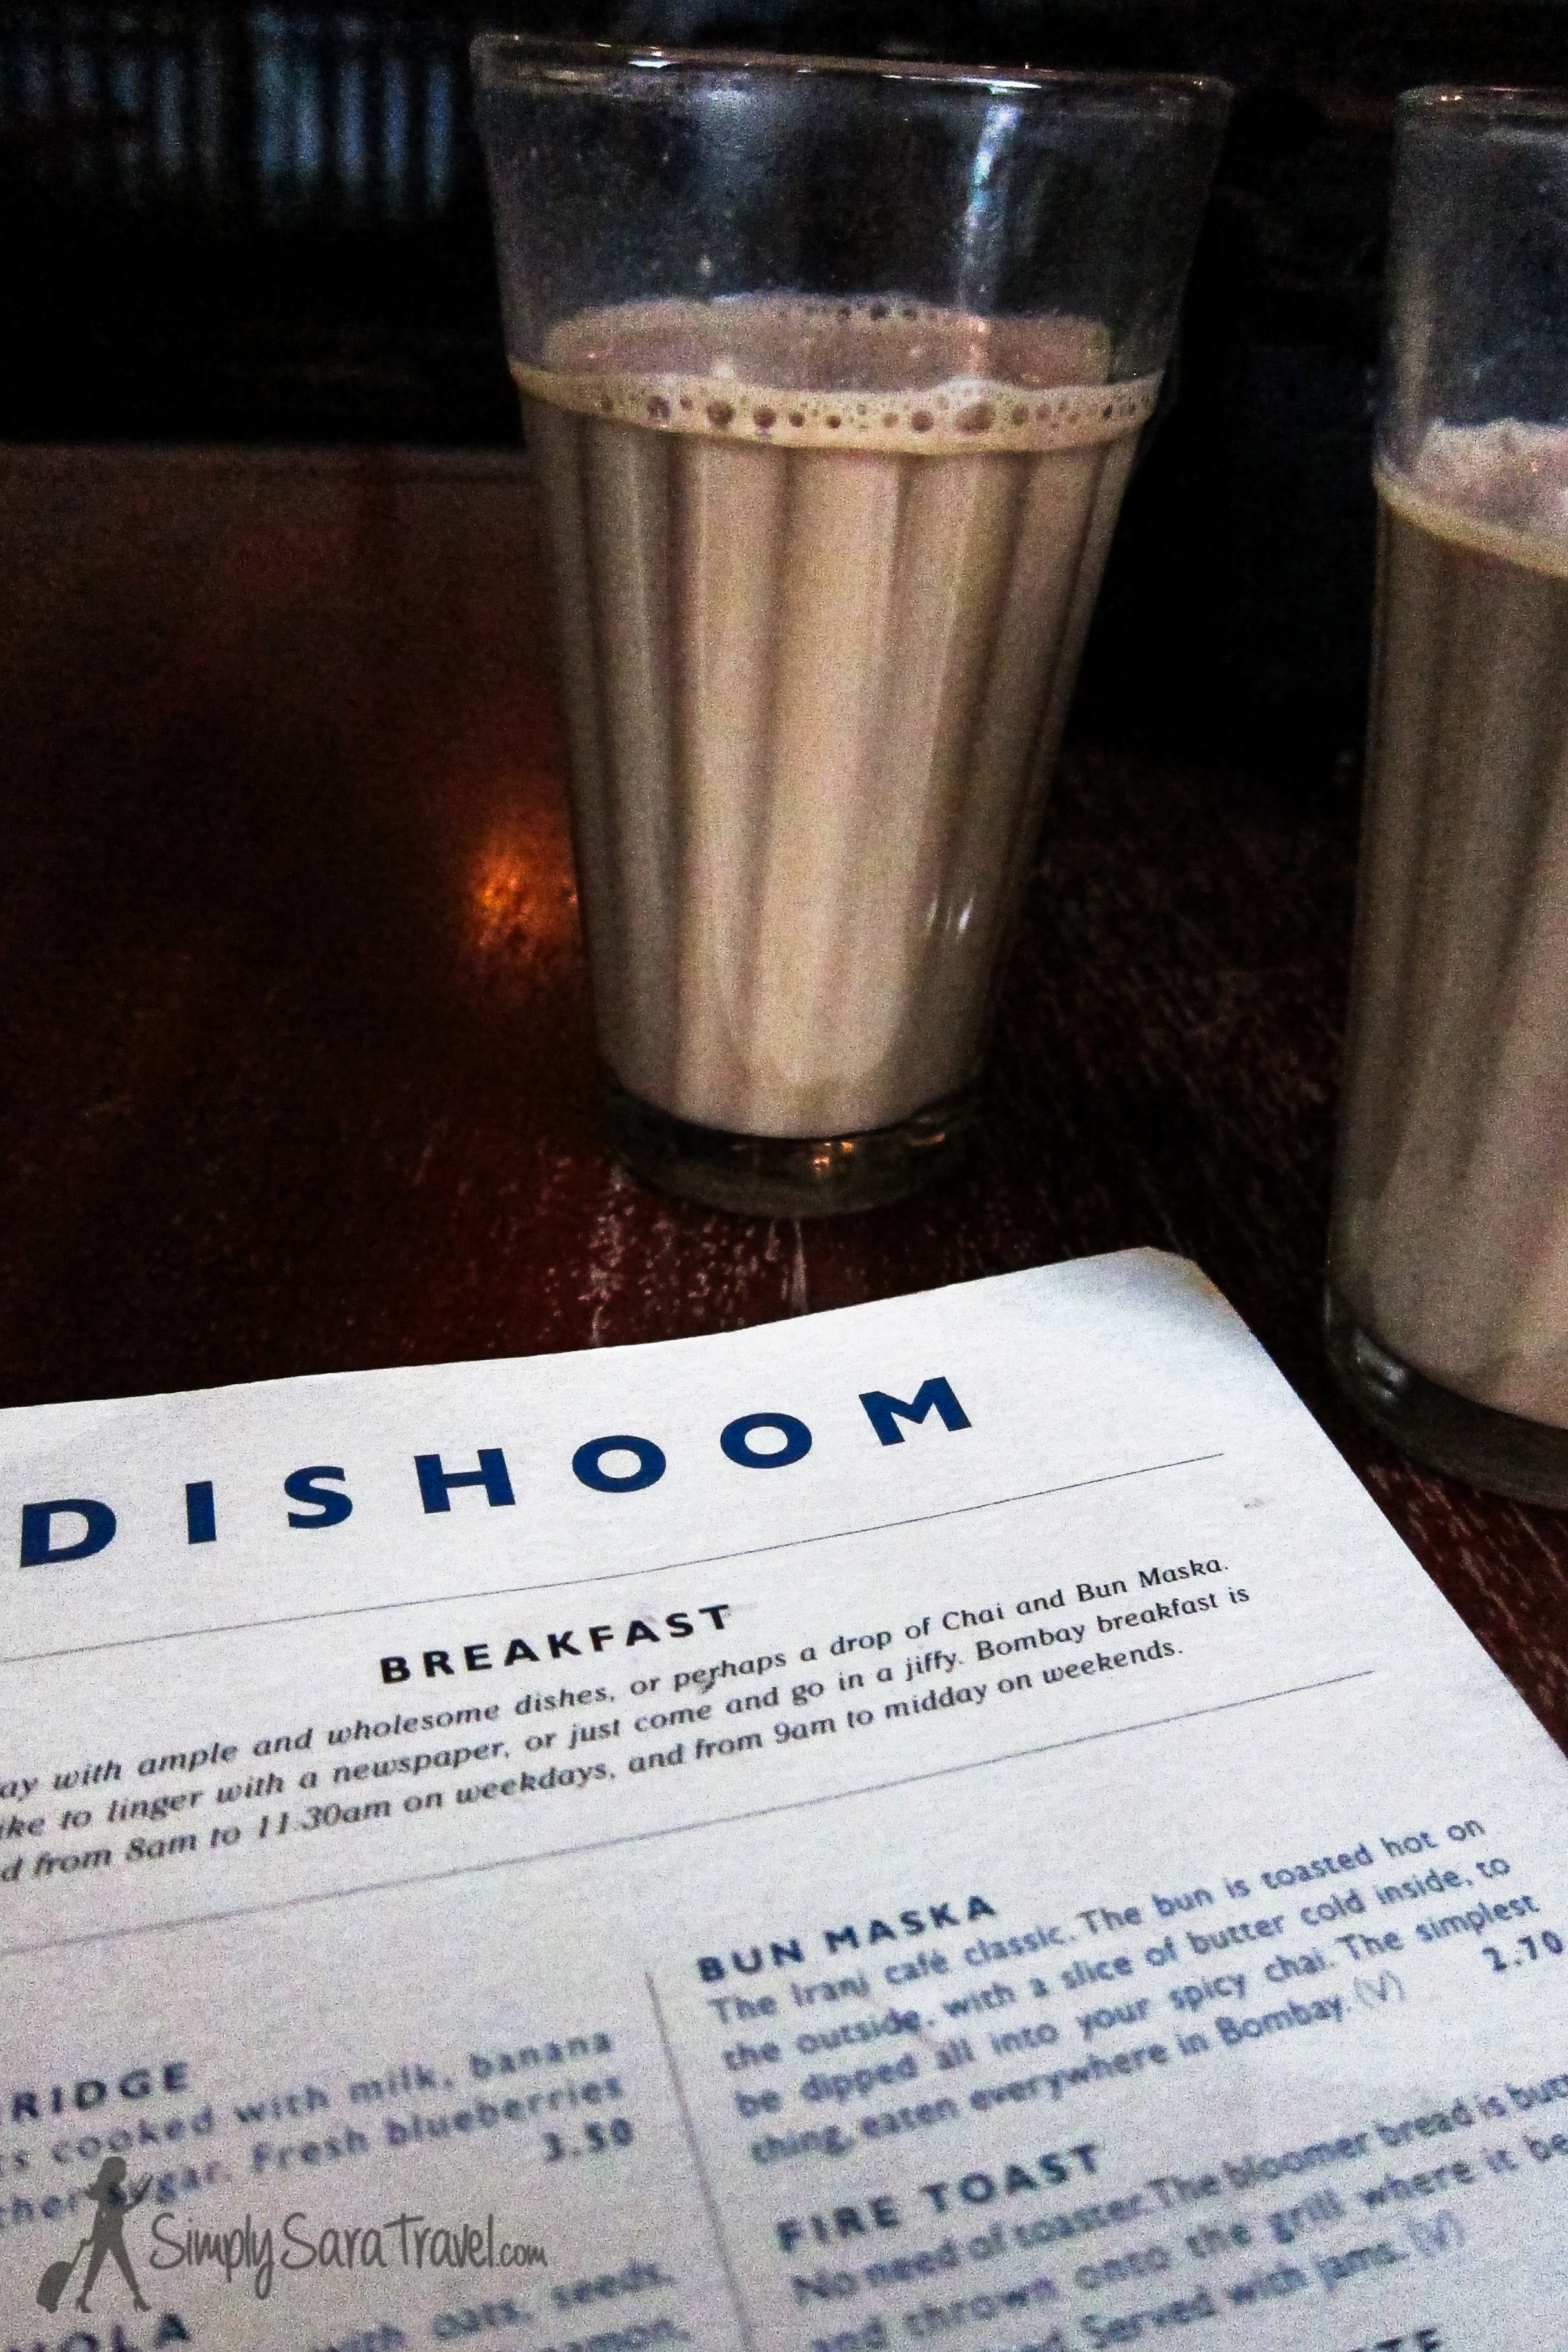 Starting off the morning with a spicy glass of Dishoom's House Chai